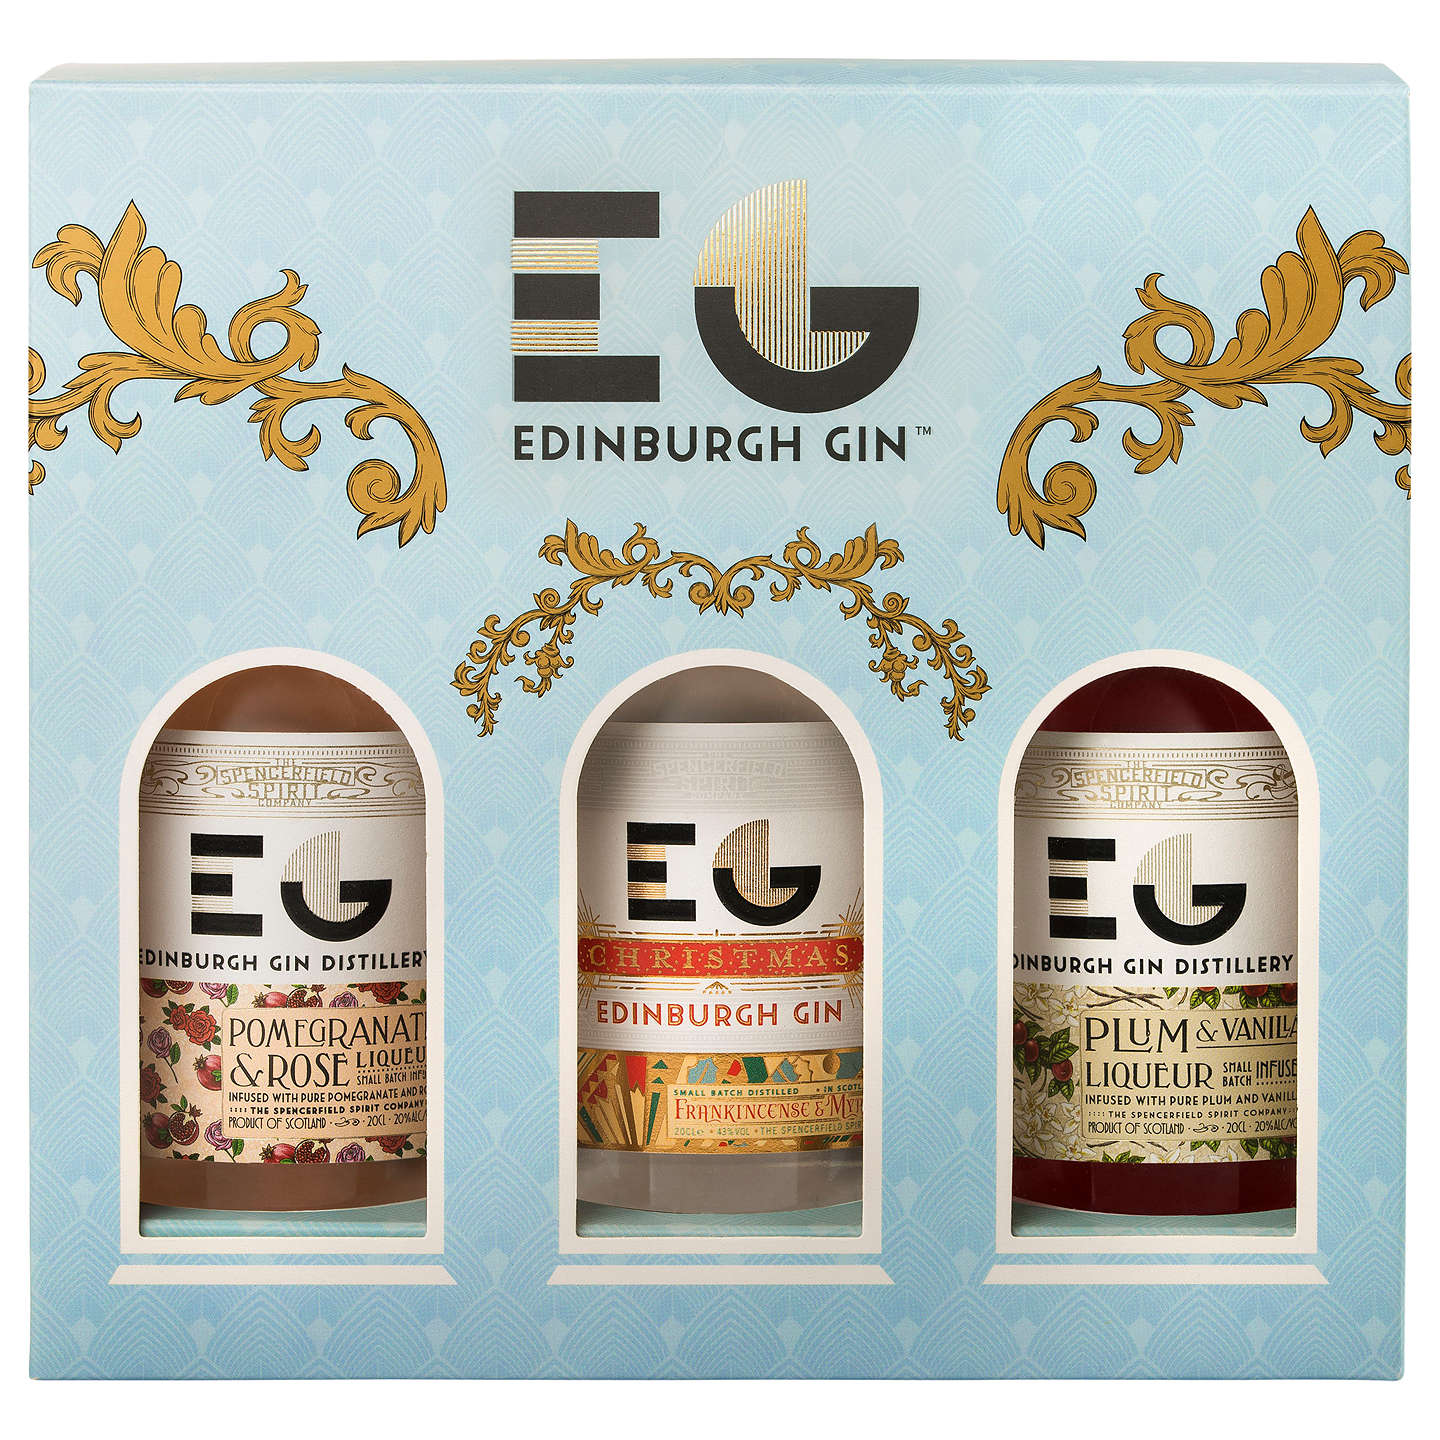 BuyEdinburgh Gin Winter Palace Christmas Liqueurs, 3x 20cl Online at johnlewis.com